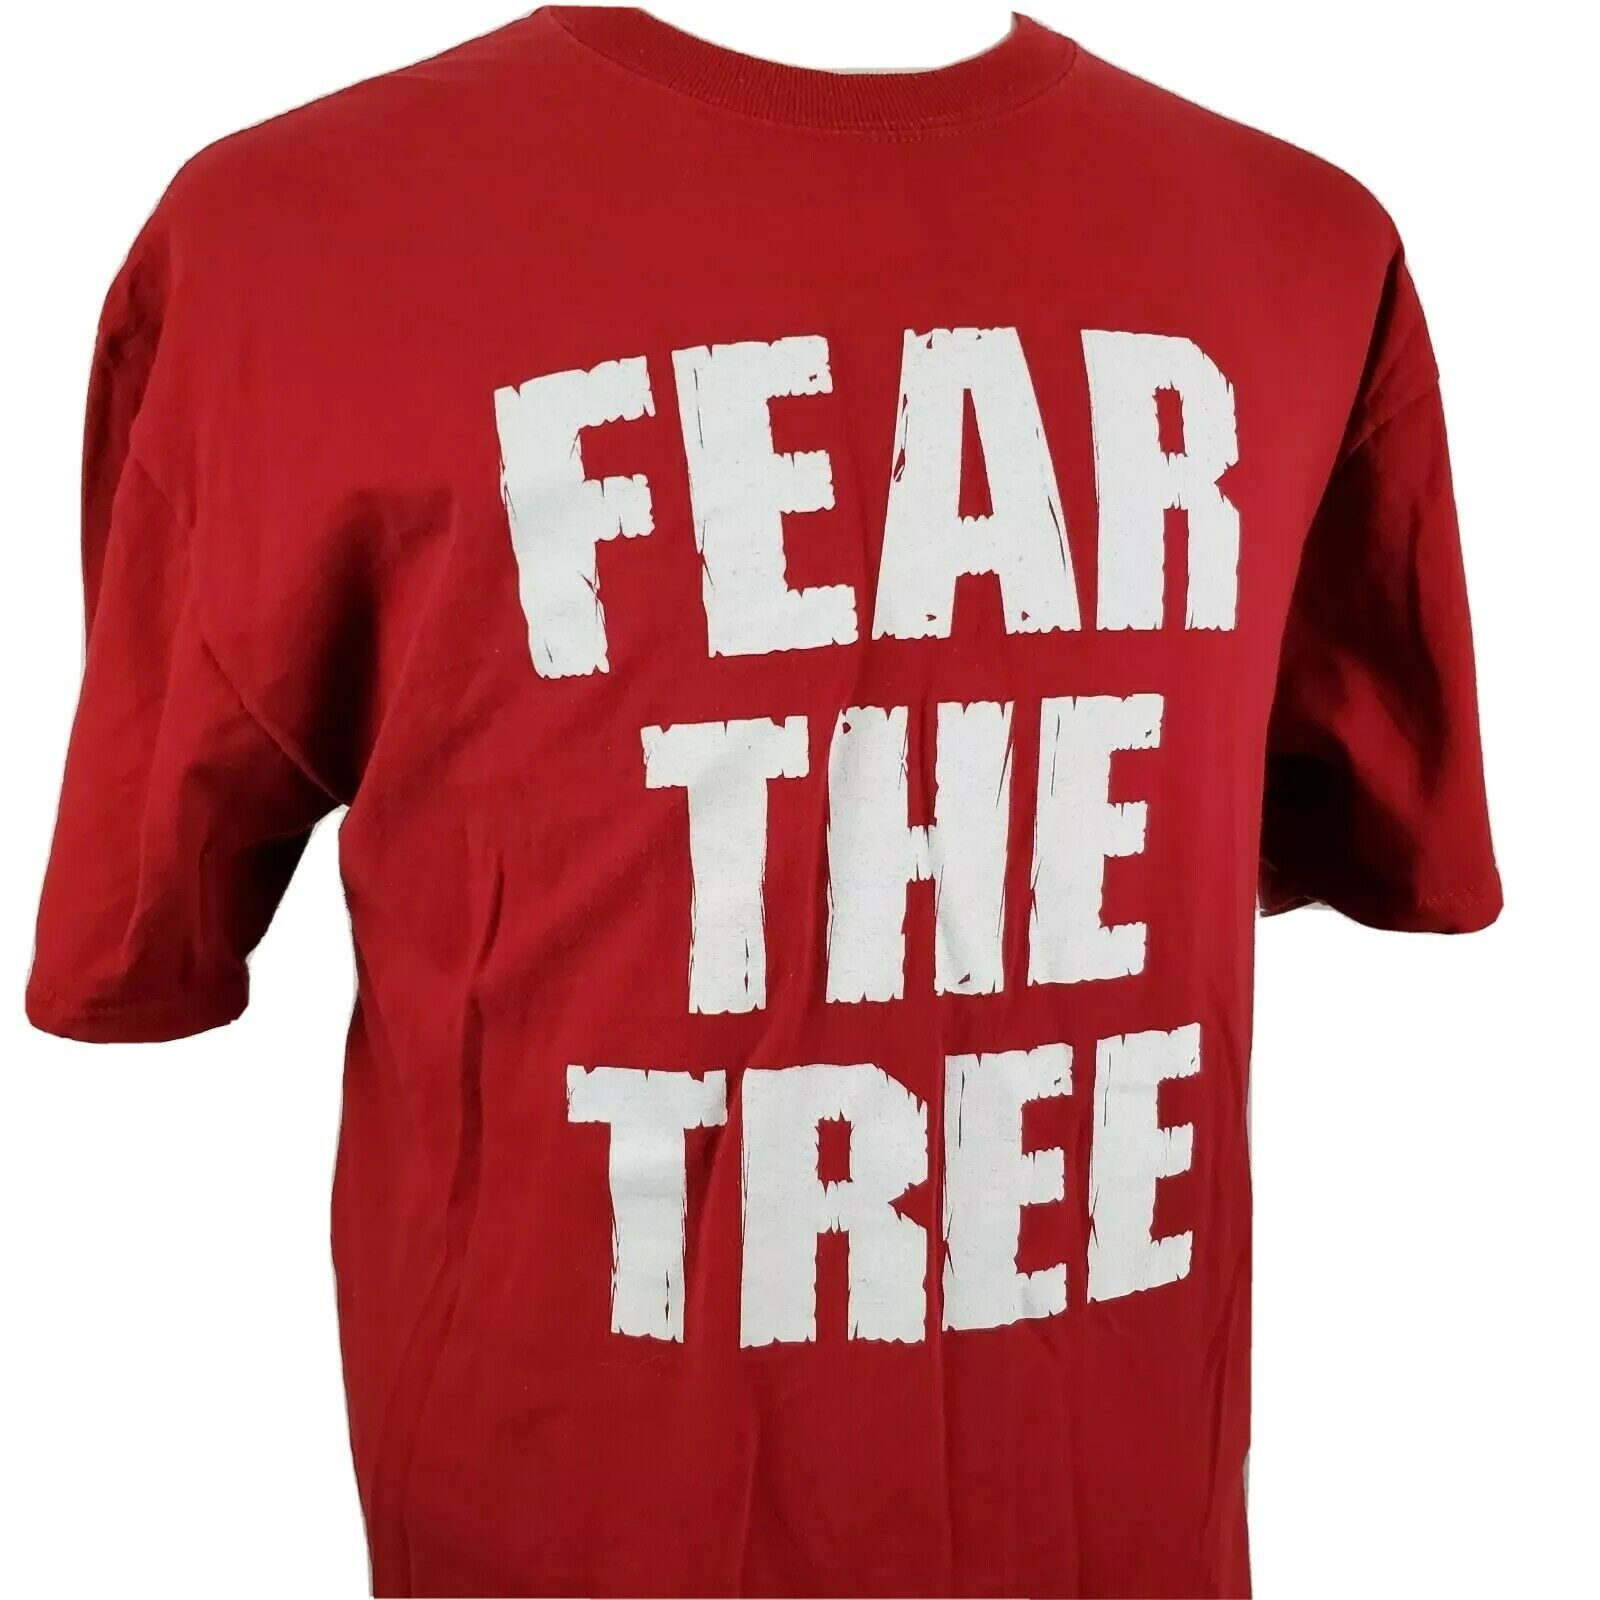 Stanford Fear the Tree T-Shirt XL Double Sided Red Jansport PAC 12 NCAA Cardinal - $17.99